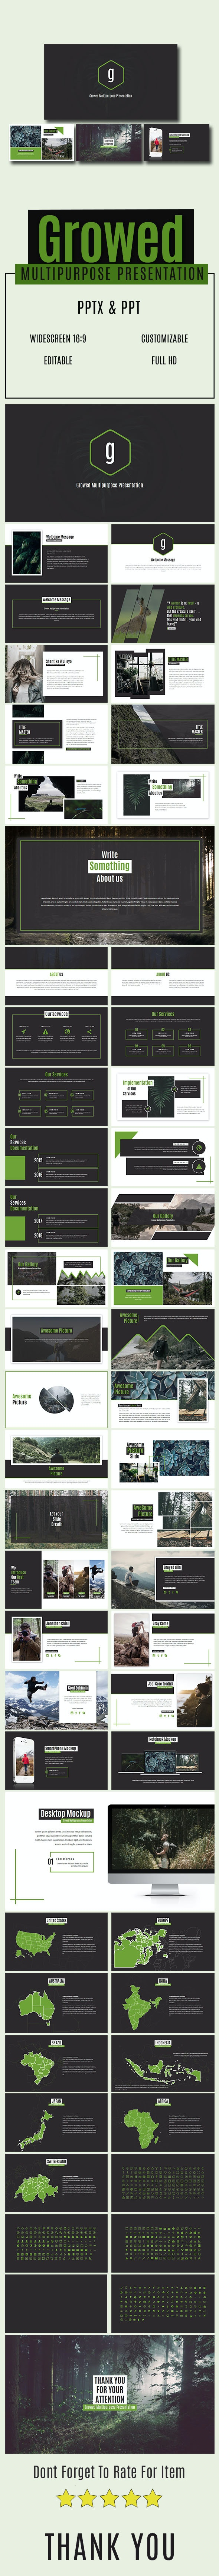 Growed Multipurpose Presentation - Abstract PowerPoint Templates